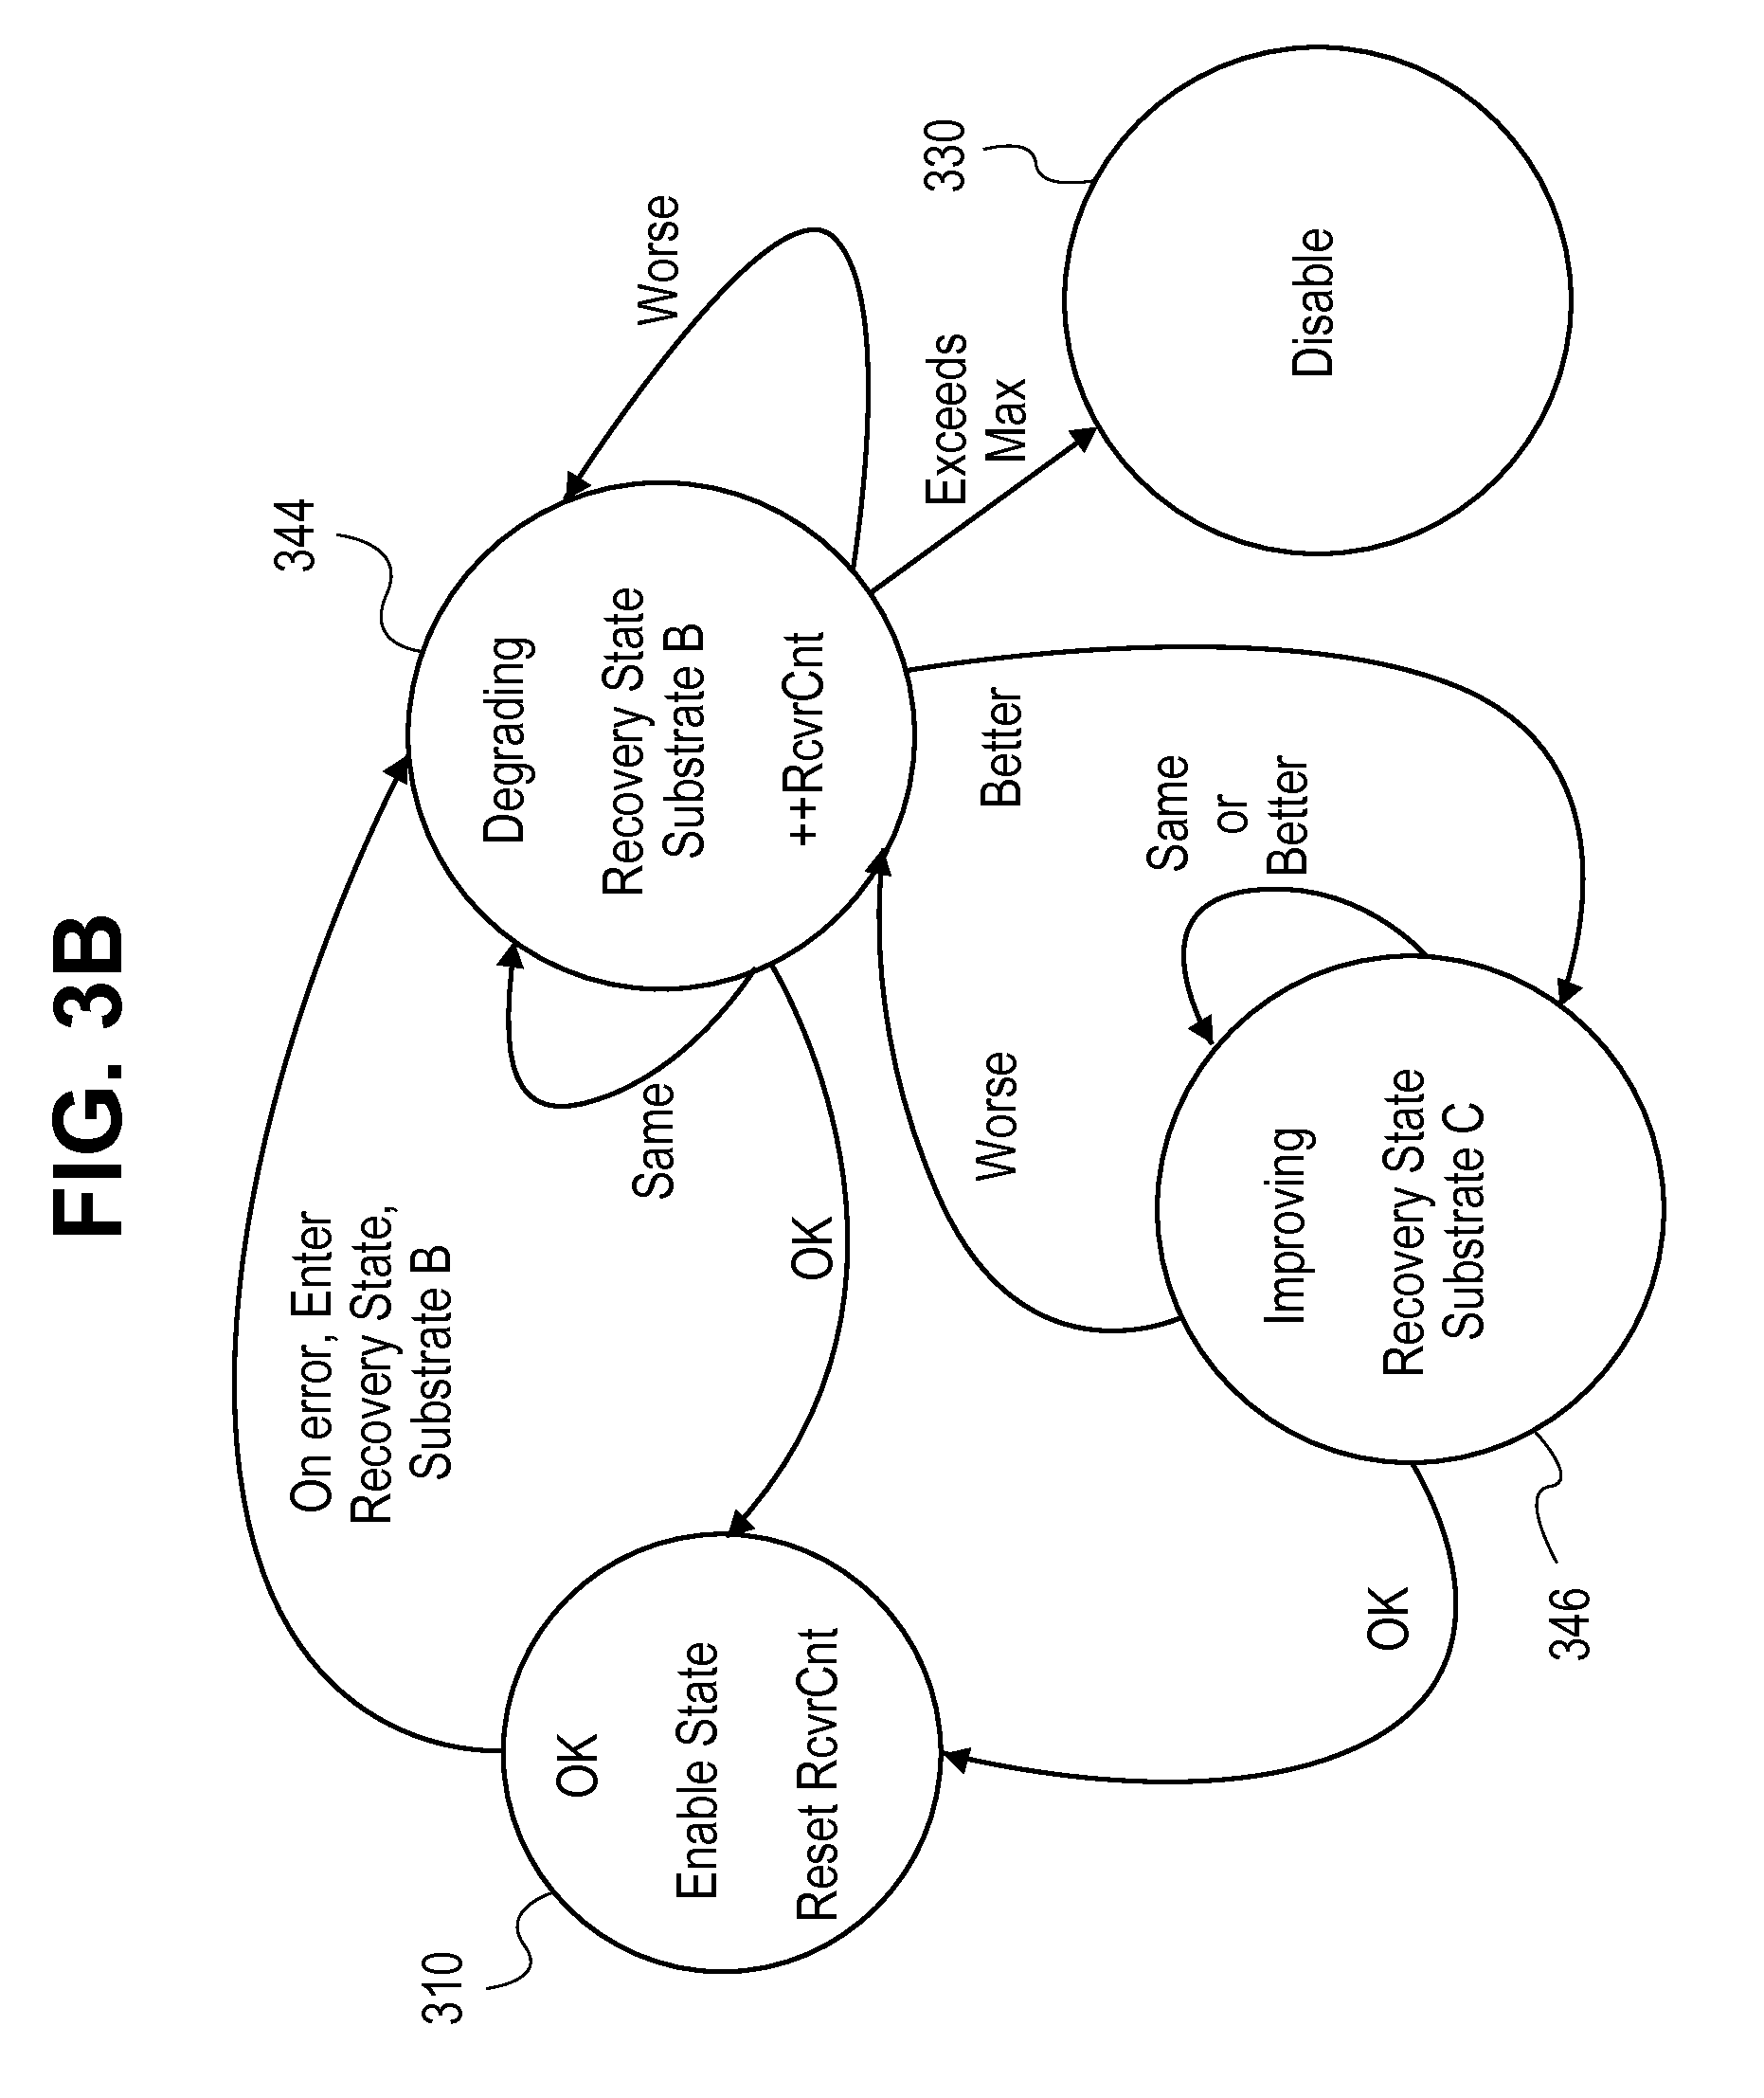 patent us8556991 approaches for ensuring data security Best Bank Teller Resumes patent drawing